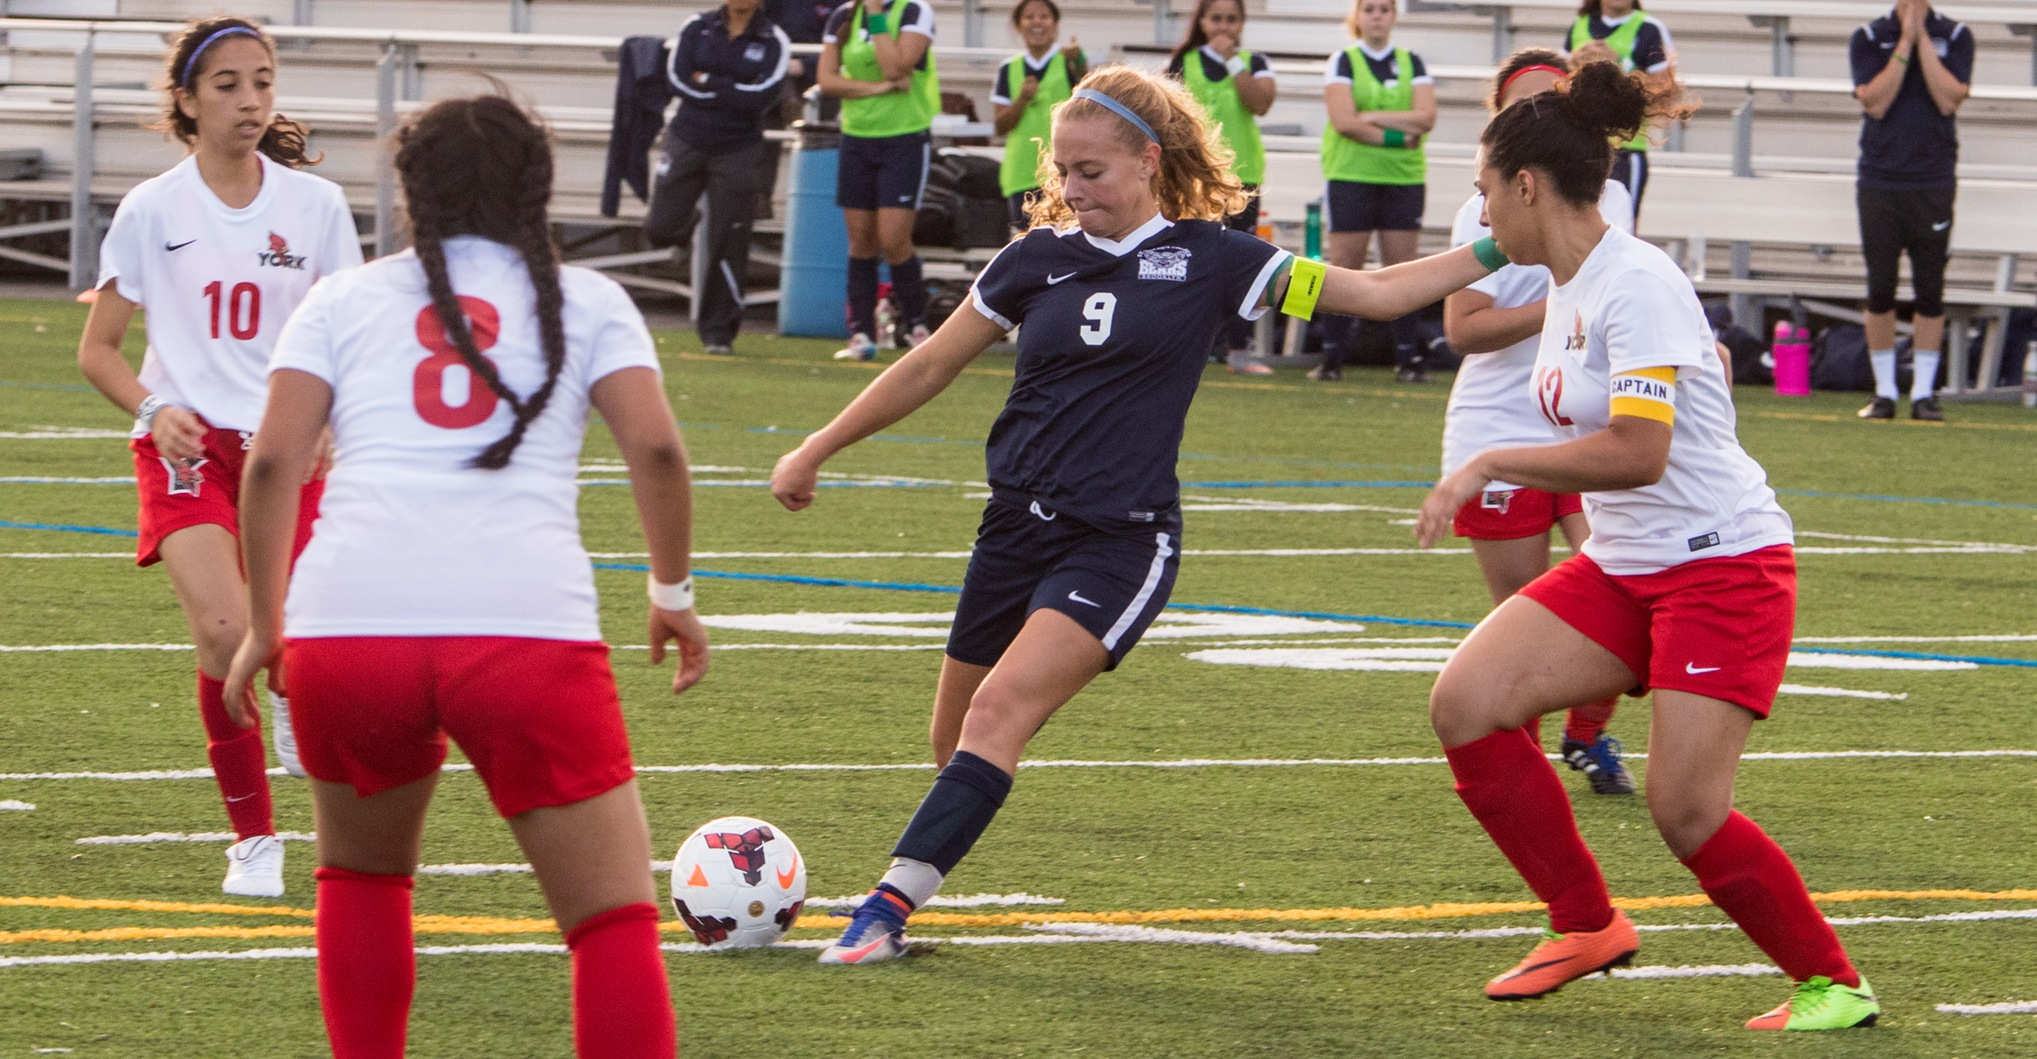 Rookies Help Power Women's Soccer to One-Sided Win Over York